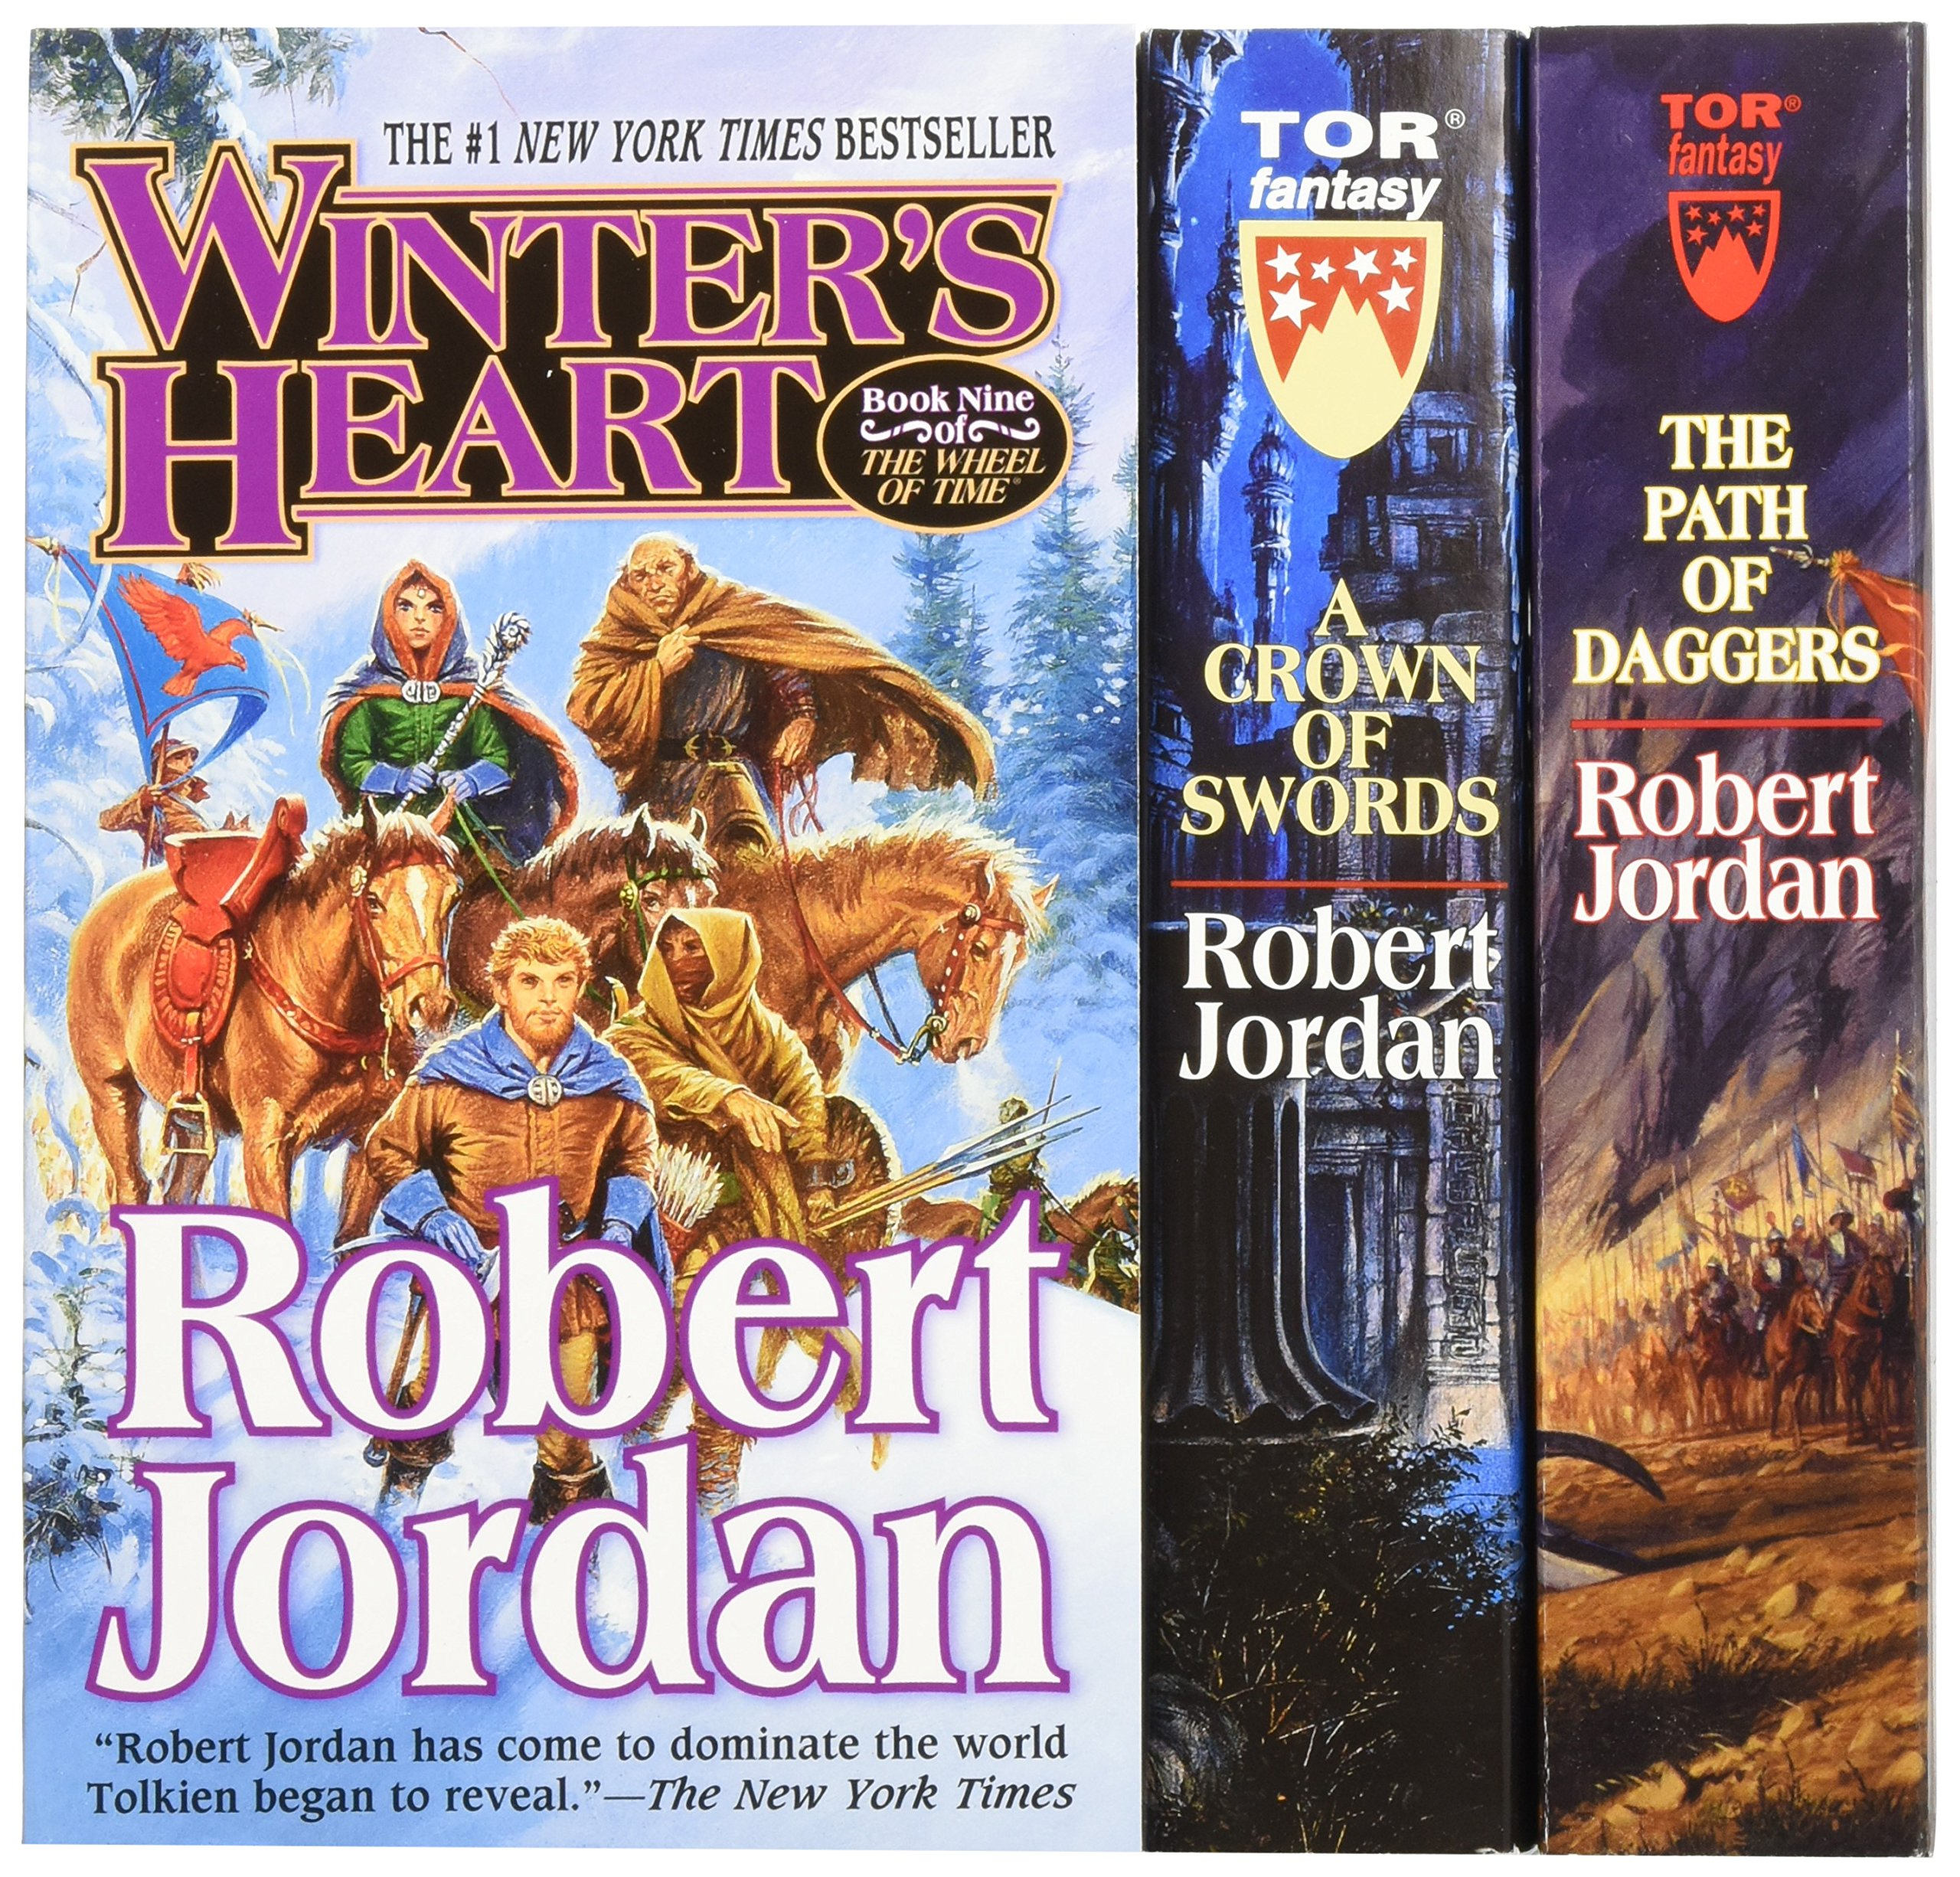 The Wheel of Time, Box Set 3: Books 7-9 (A Crown of Swords